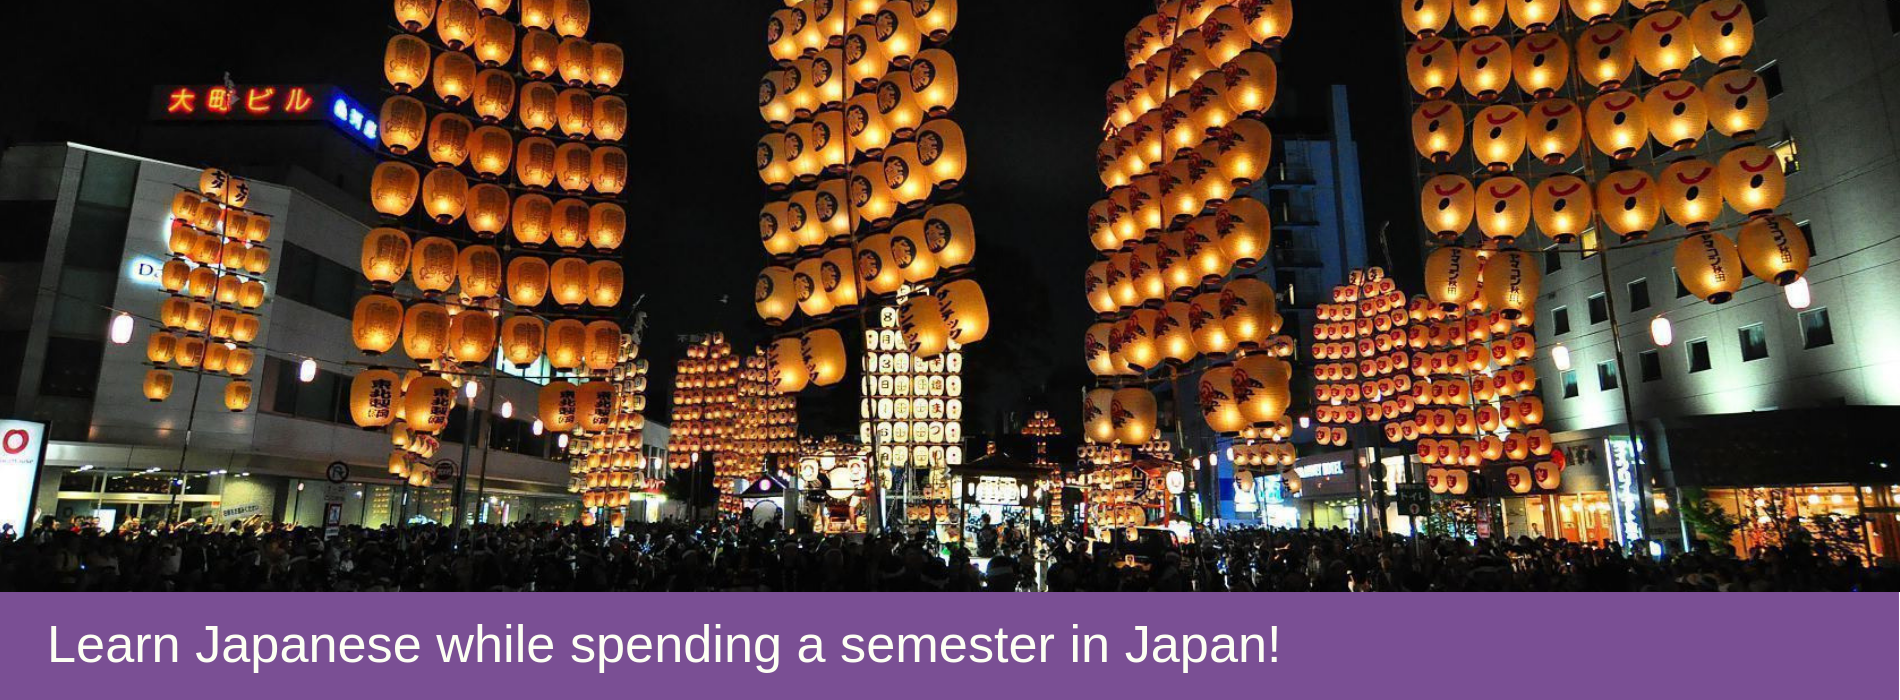 Learn Japanese while spending a semester in Japan!